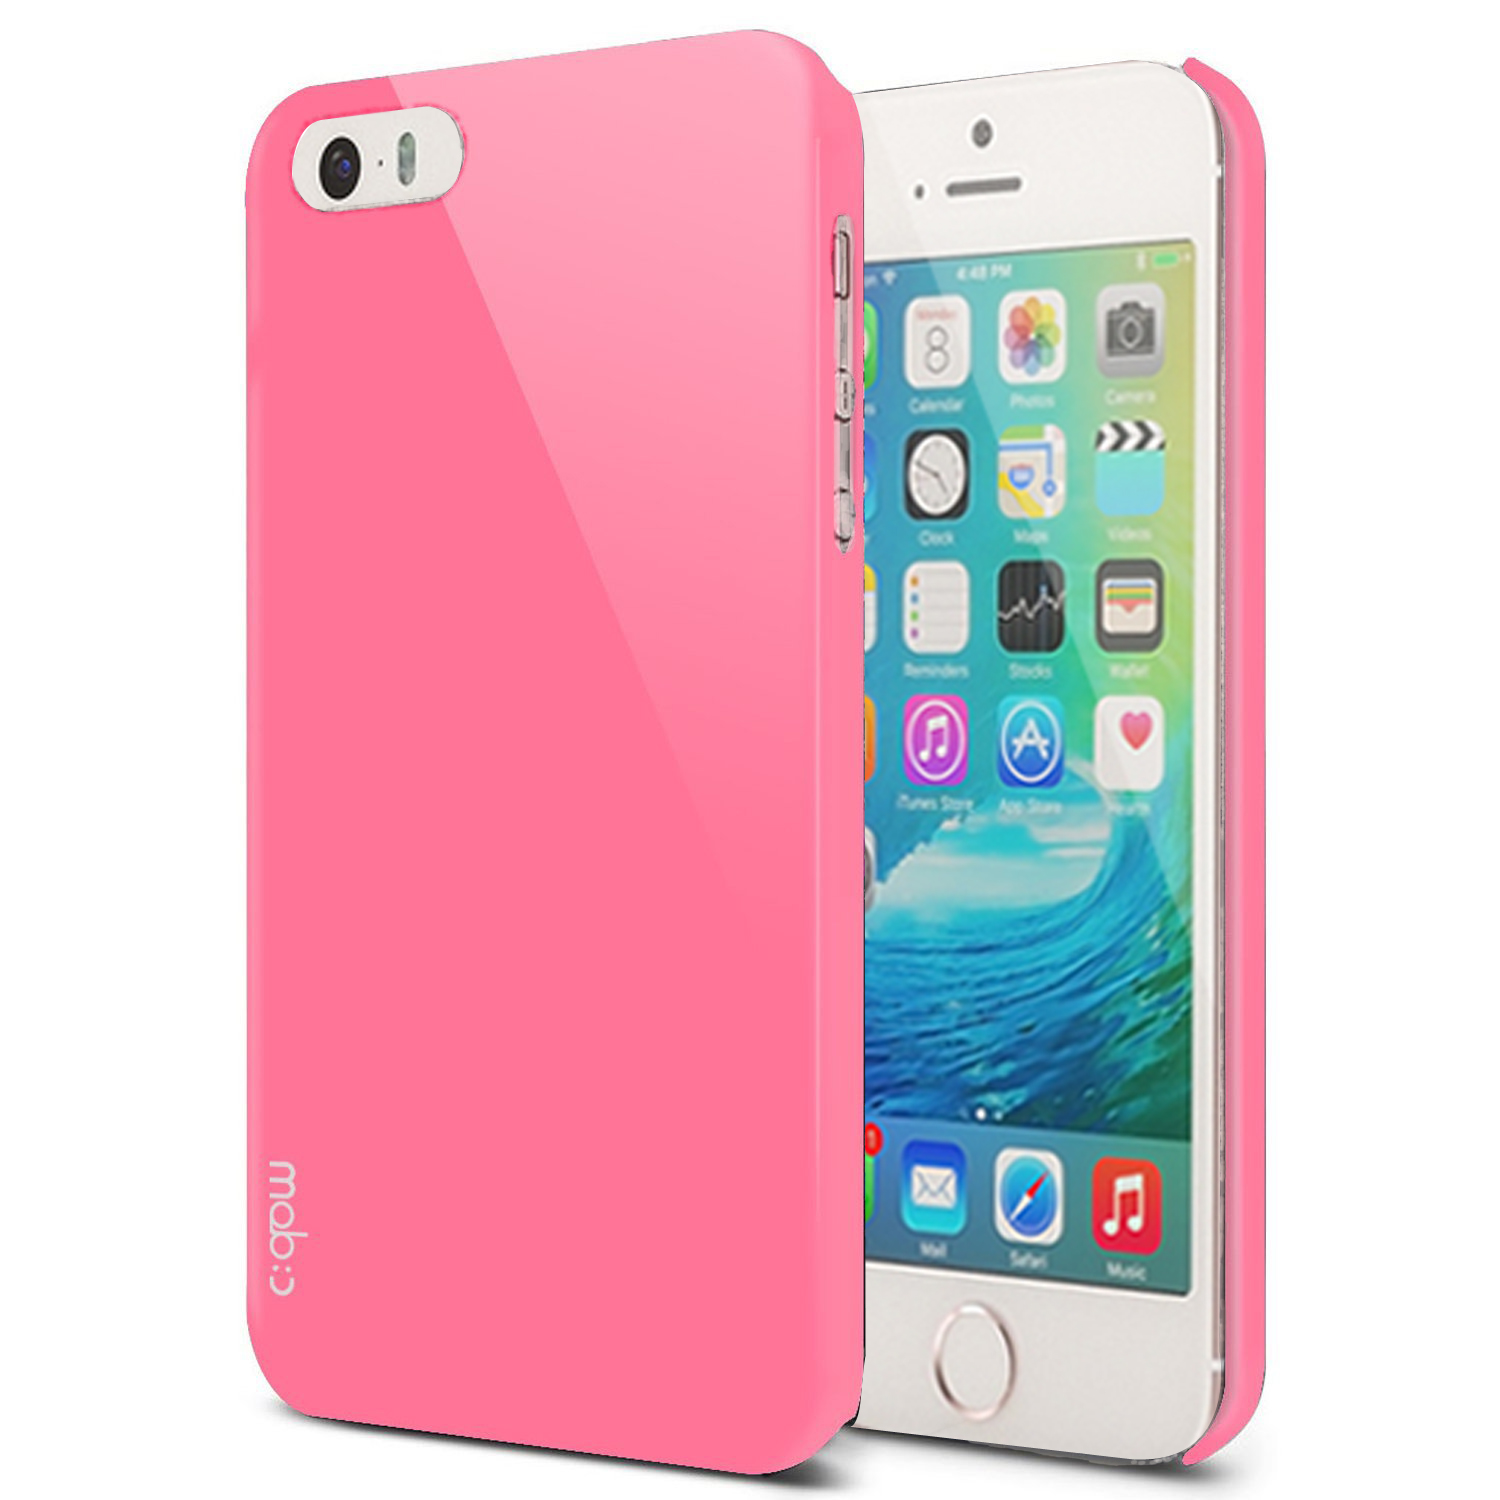 Made for Apple iPhone SE/5/5S Case, MobC [Baby Pink]  Hard Case Cover; Perfect fit as Best Coolest Design Plastic Case w/ Free Screen Protector! by Redshield